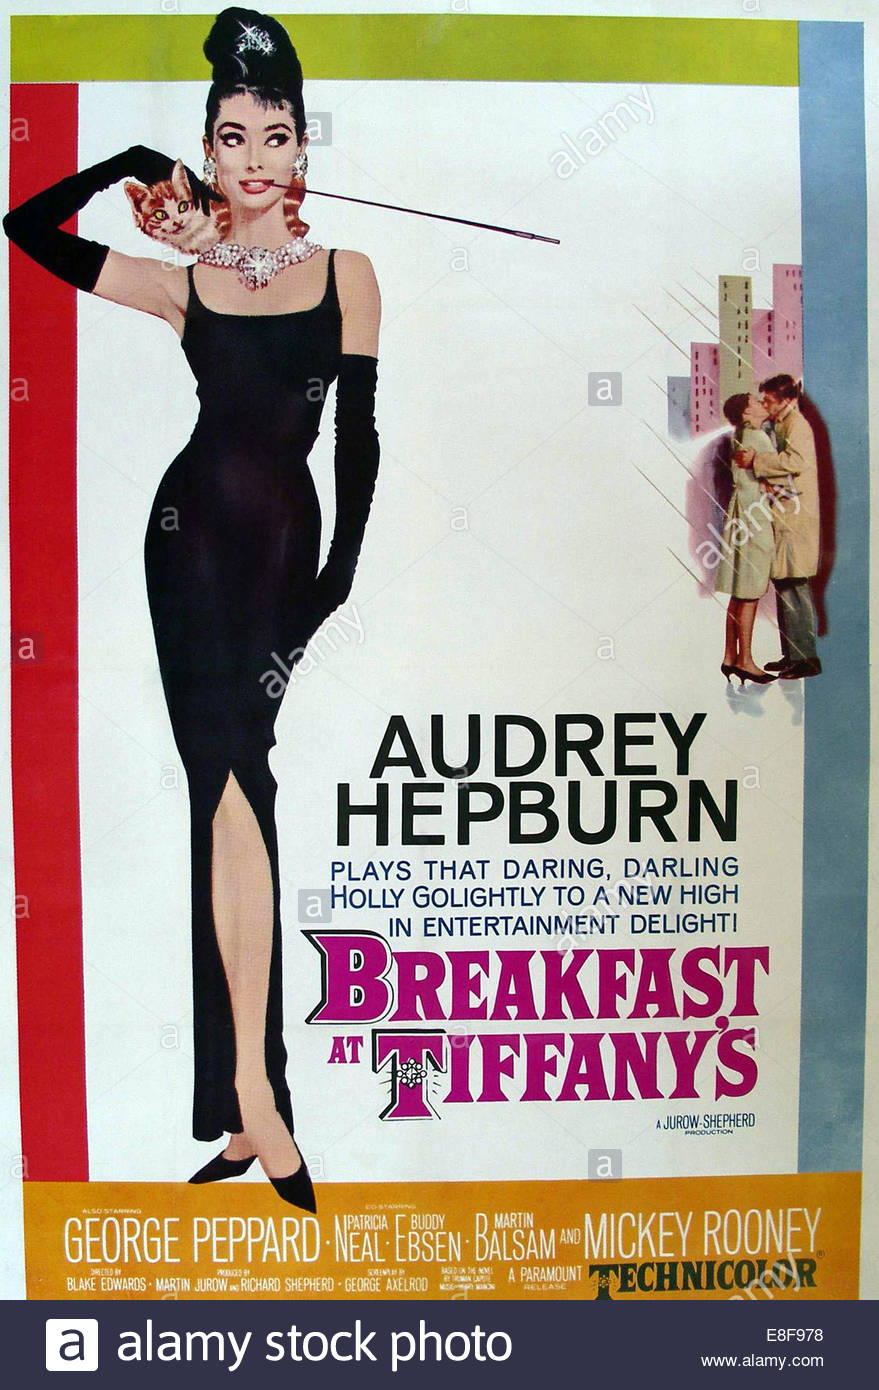 Breakfast at Tiffany's (movie poster). Artist: Anonymous Stock Photo